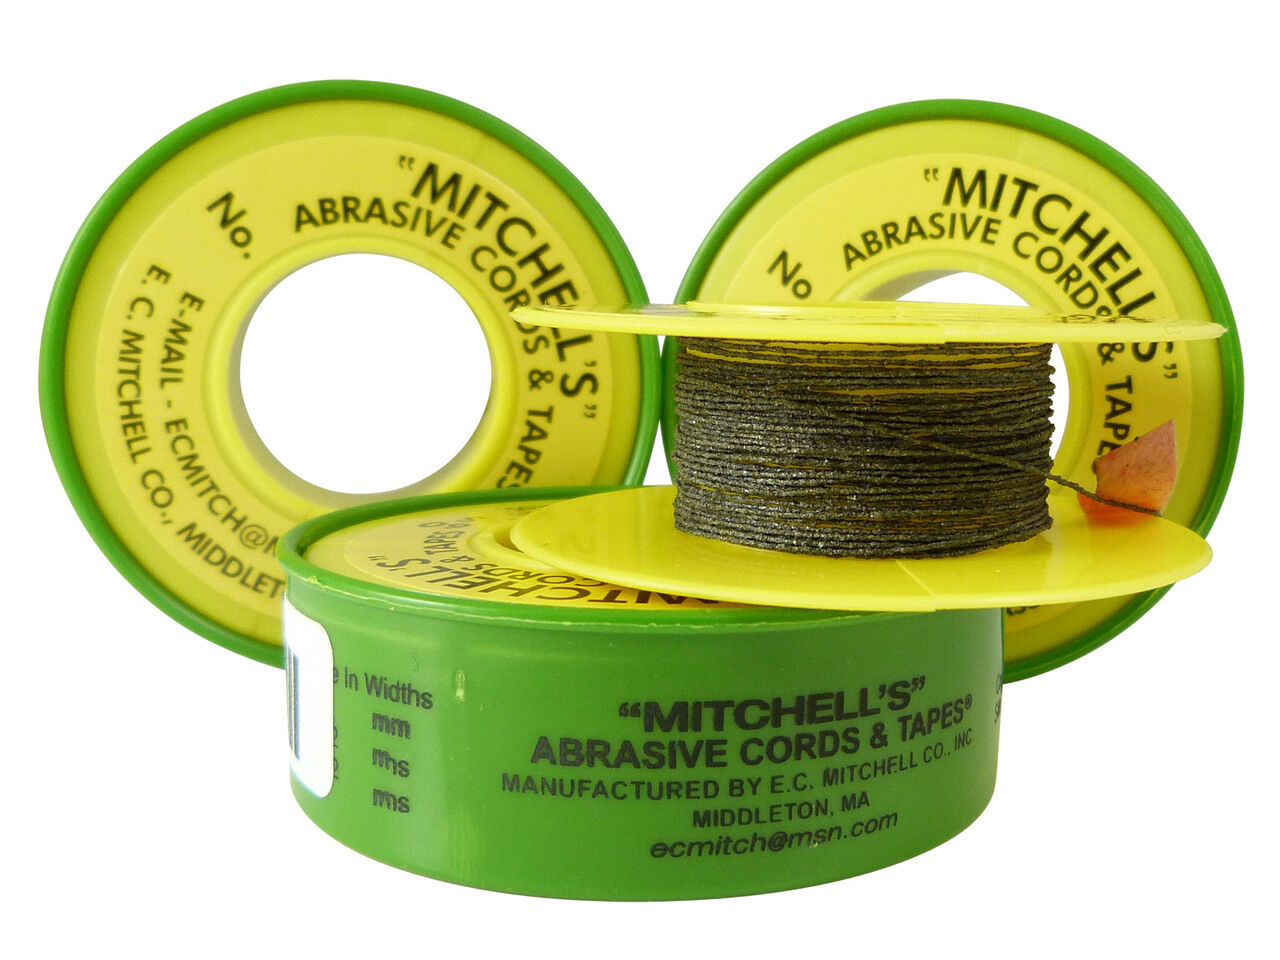 *NOS* MITCHELL/'S ABRASIVE CORDS /& TAPES 55 *FREE SHIPPING*